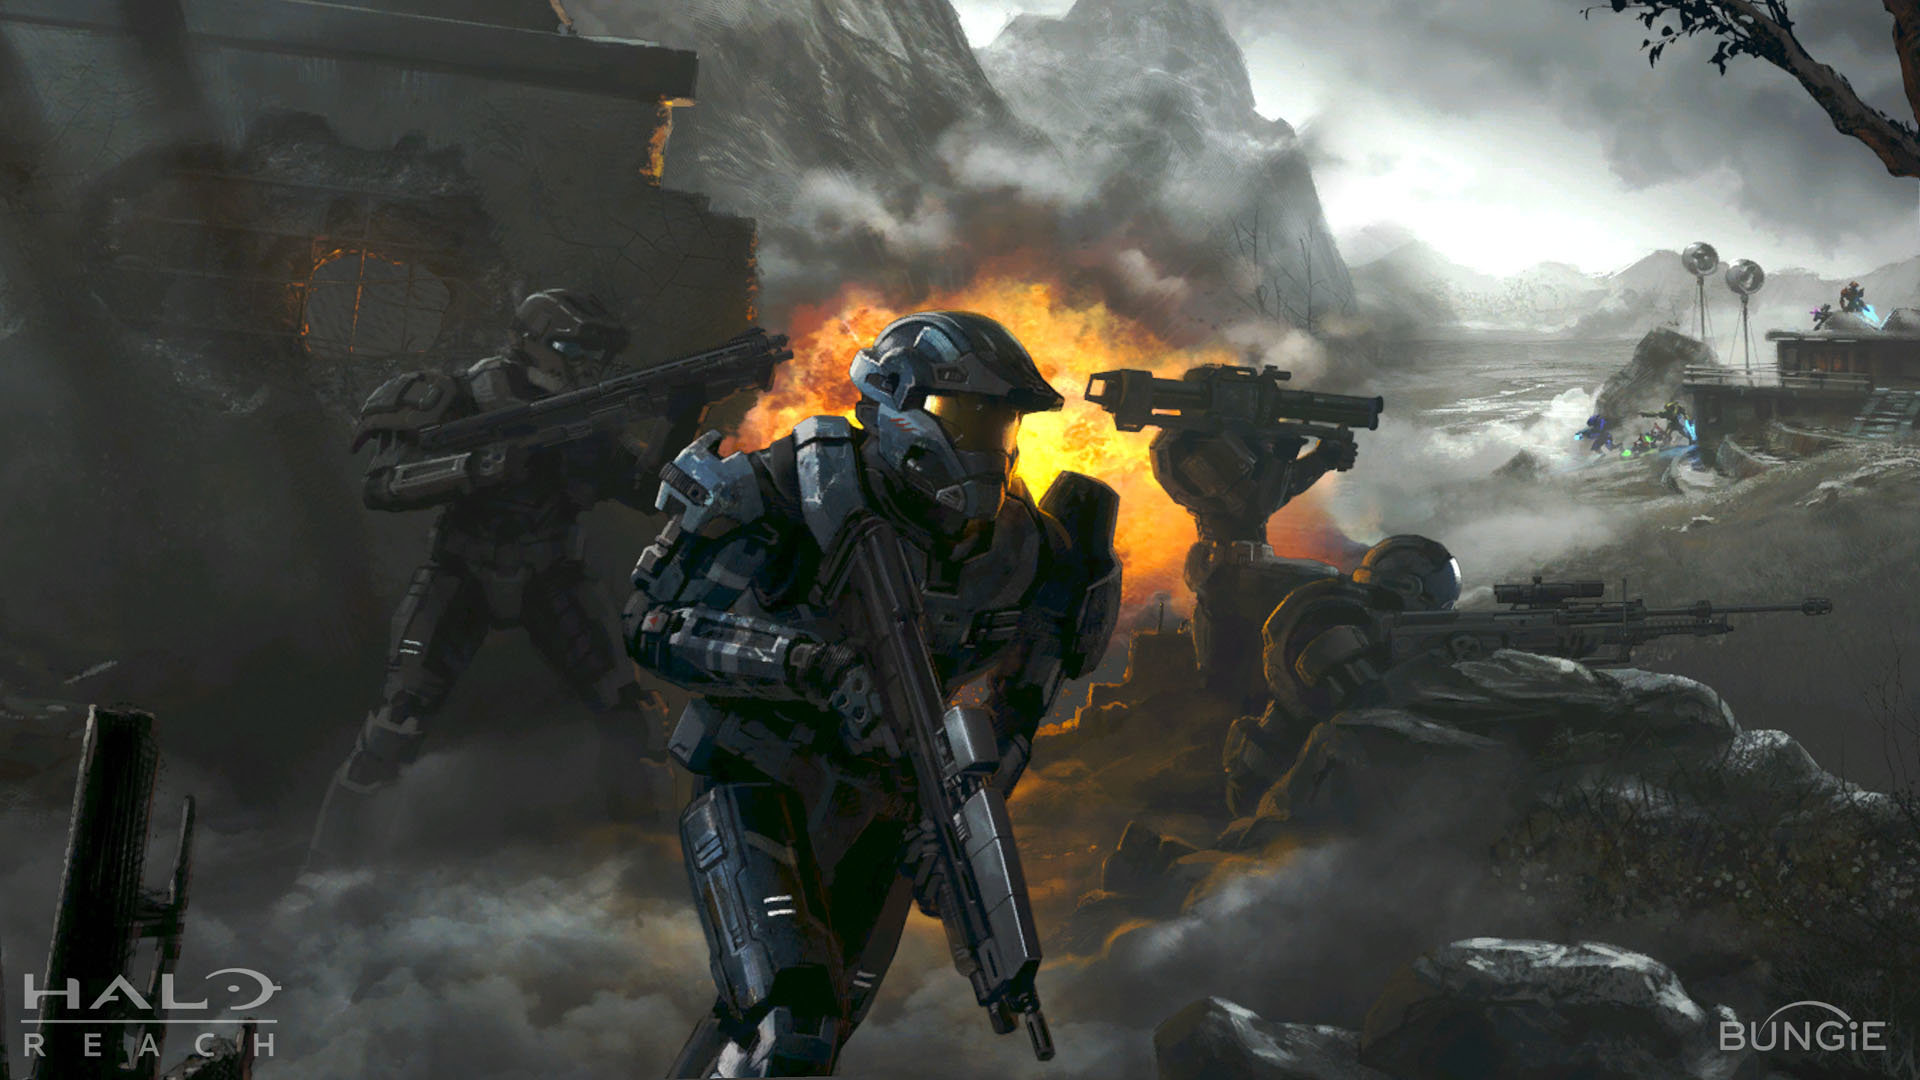 halo reach firefight